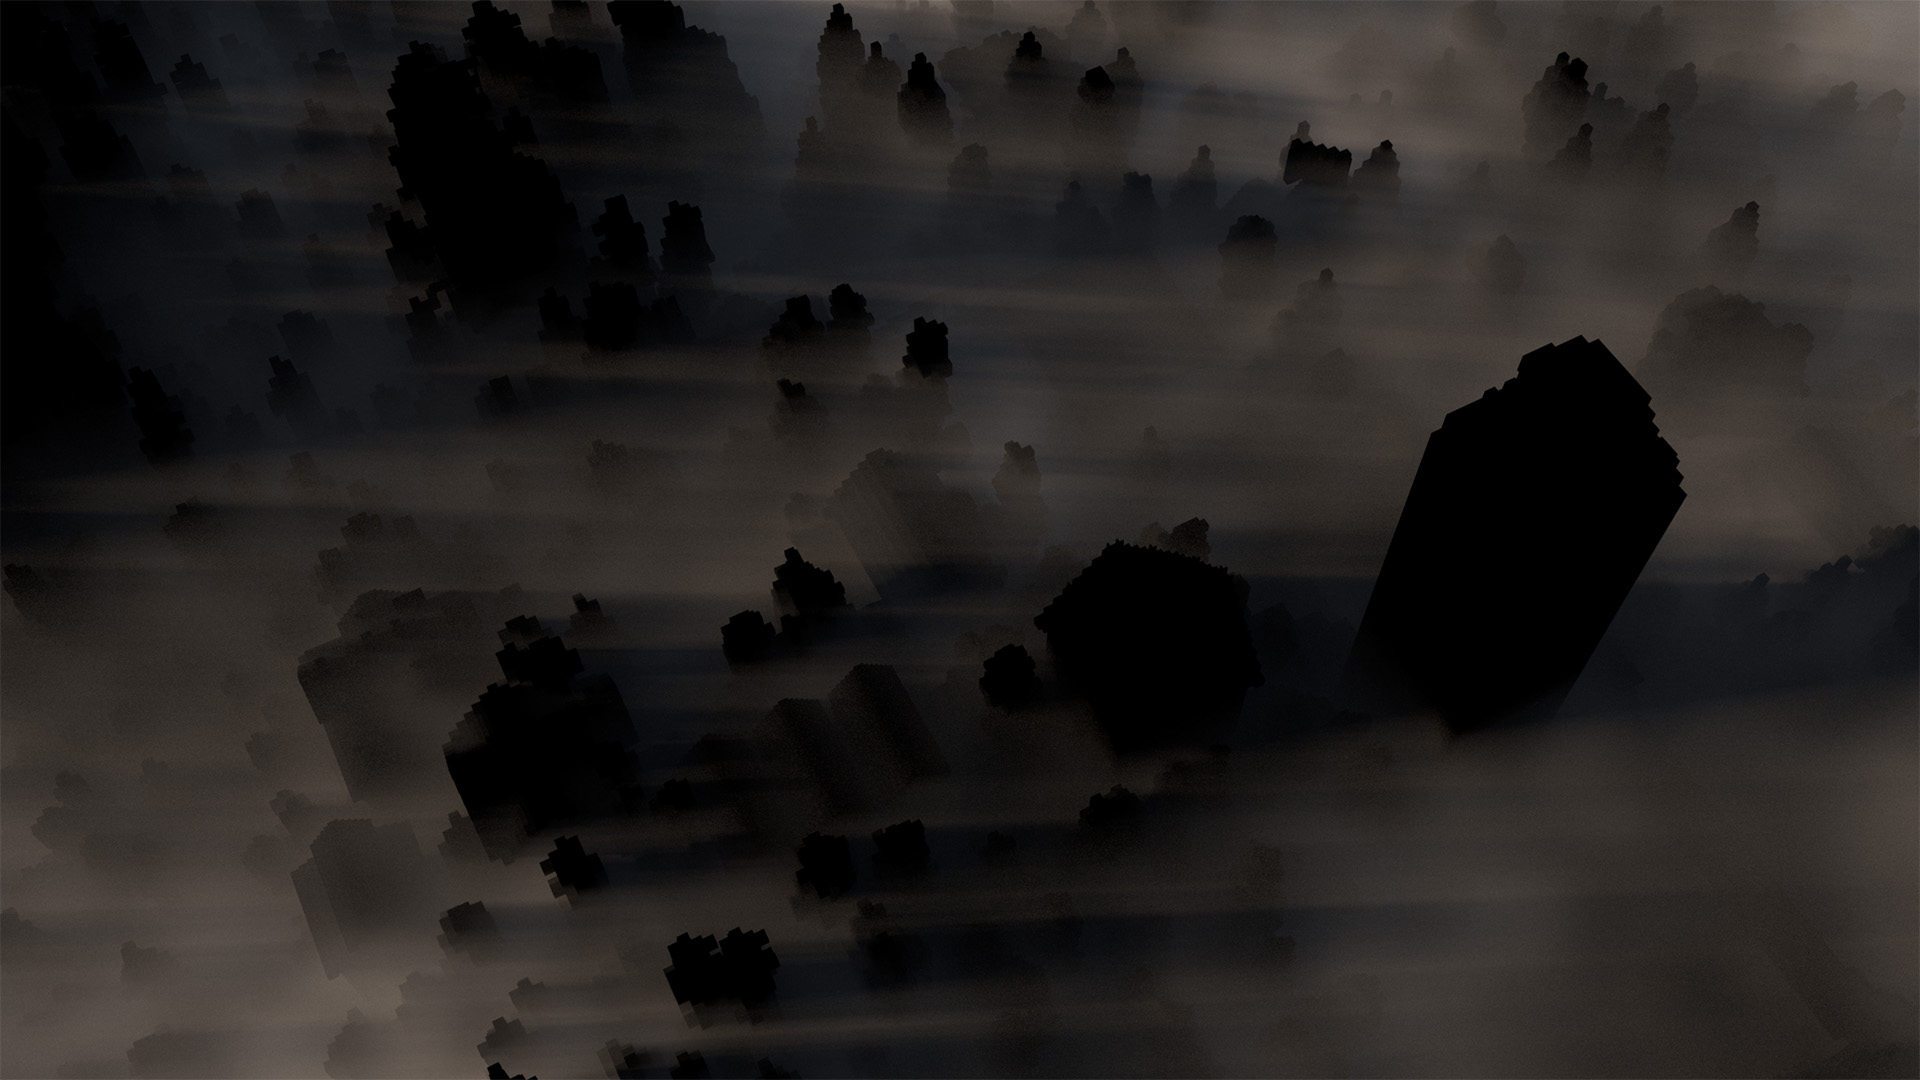 Final fog pass, with extra spotlight. Note how the fog seems to sit in the lower river valley and pour out of the forest.